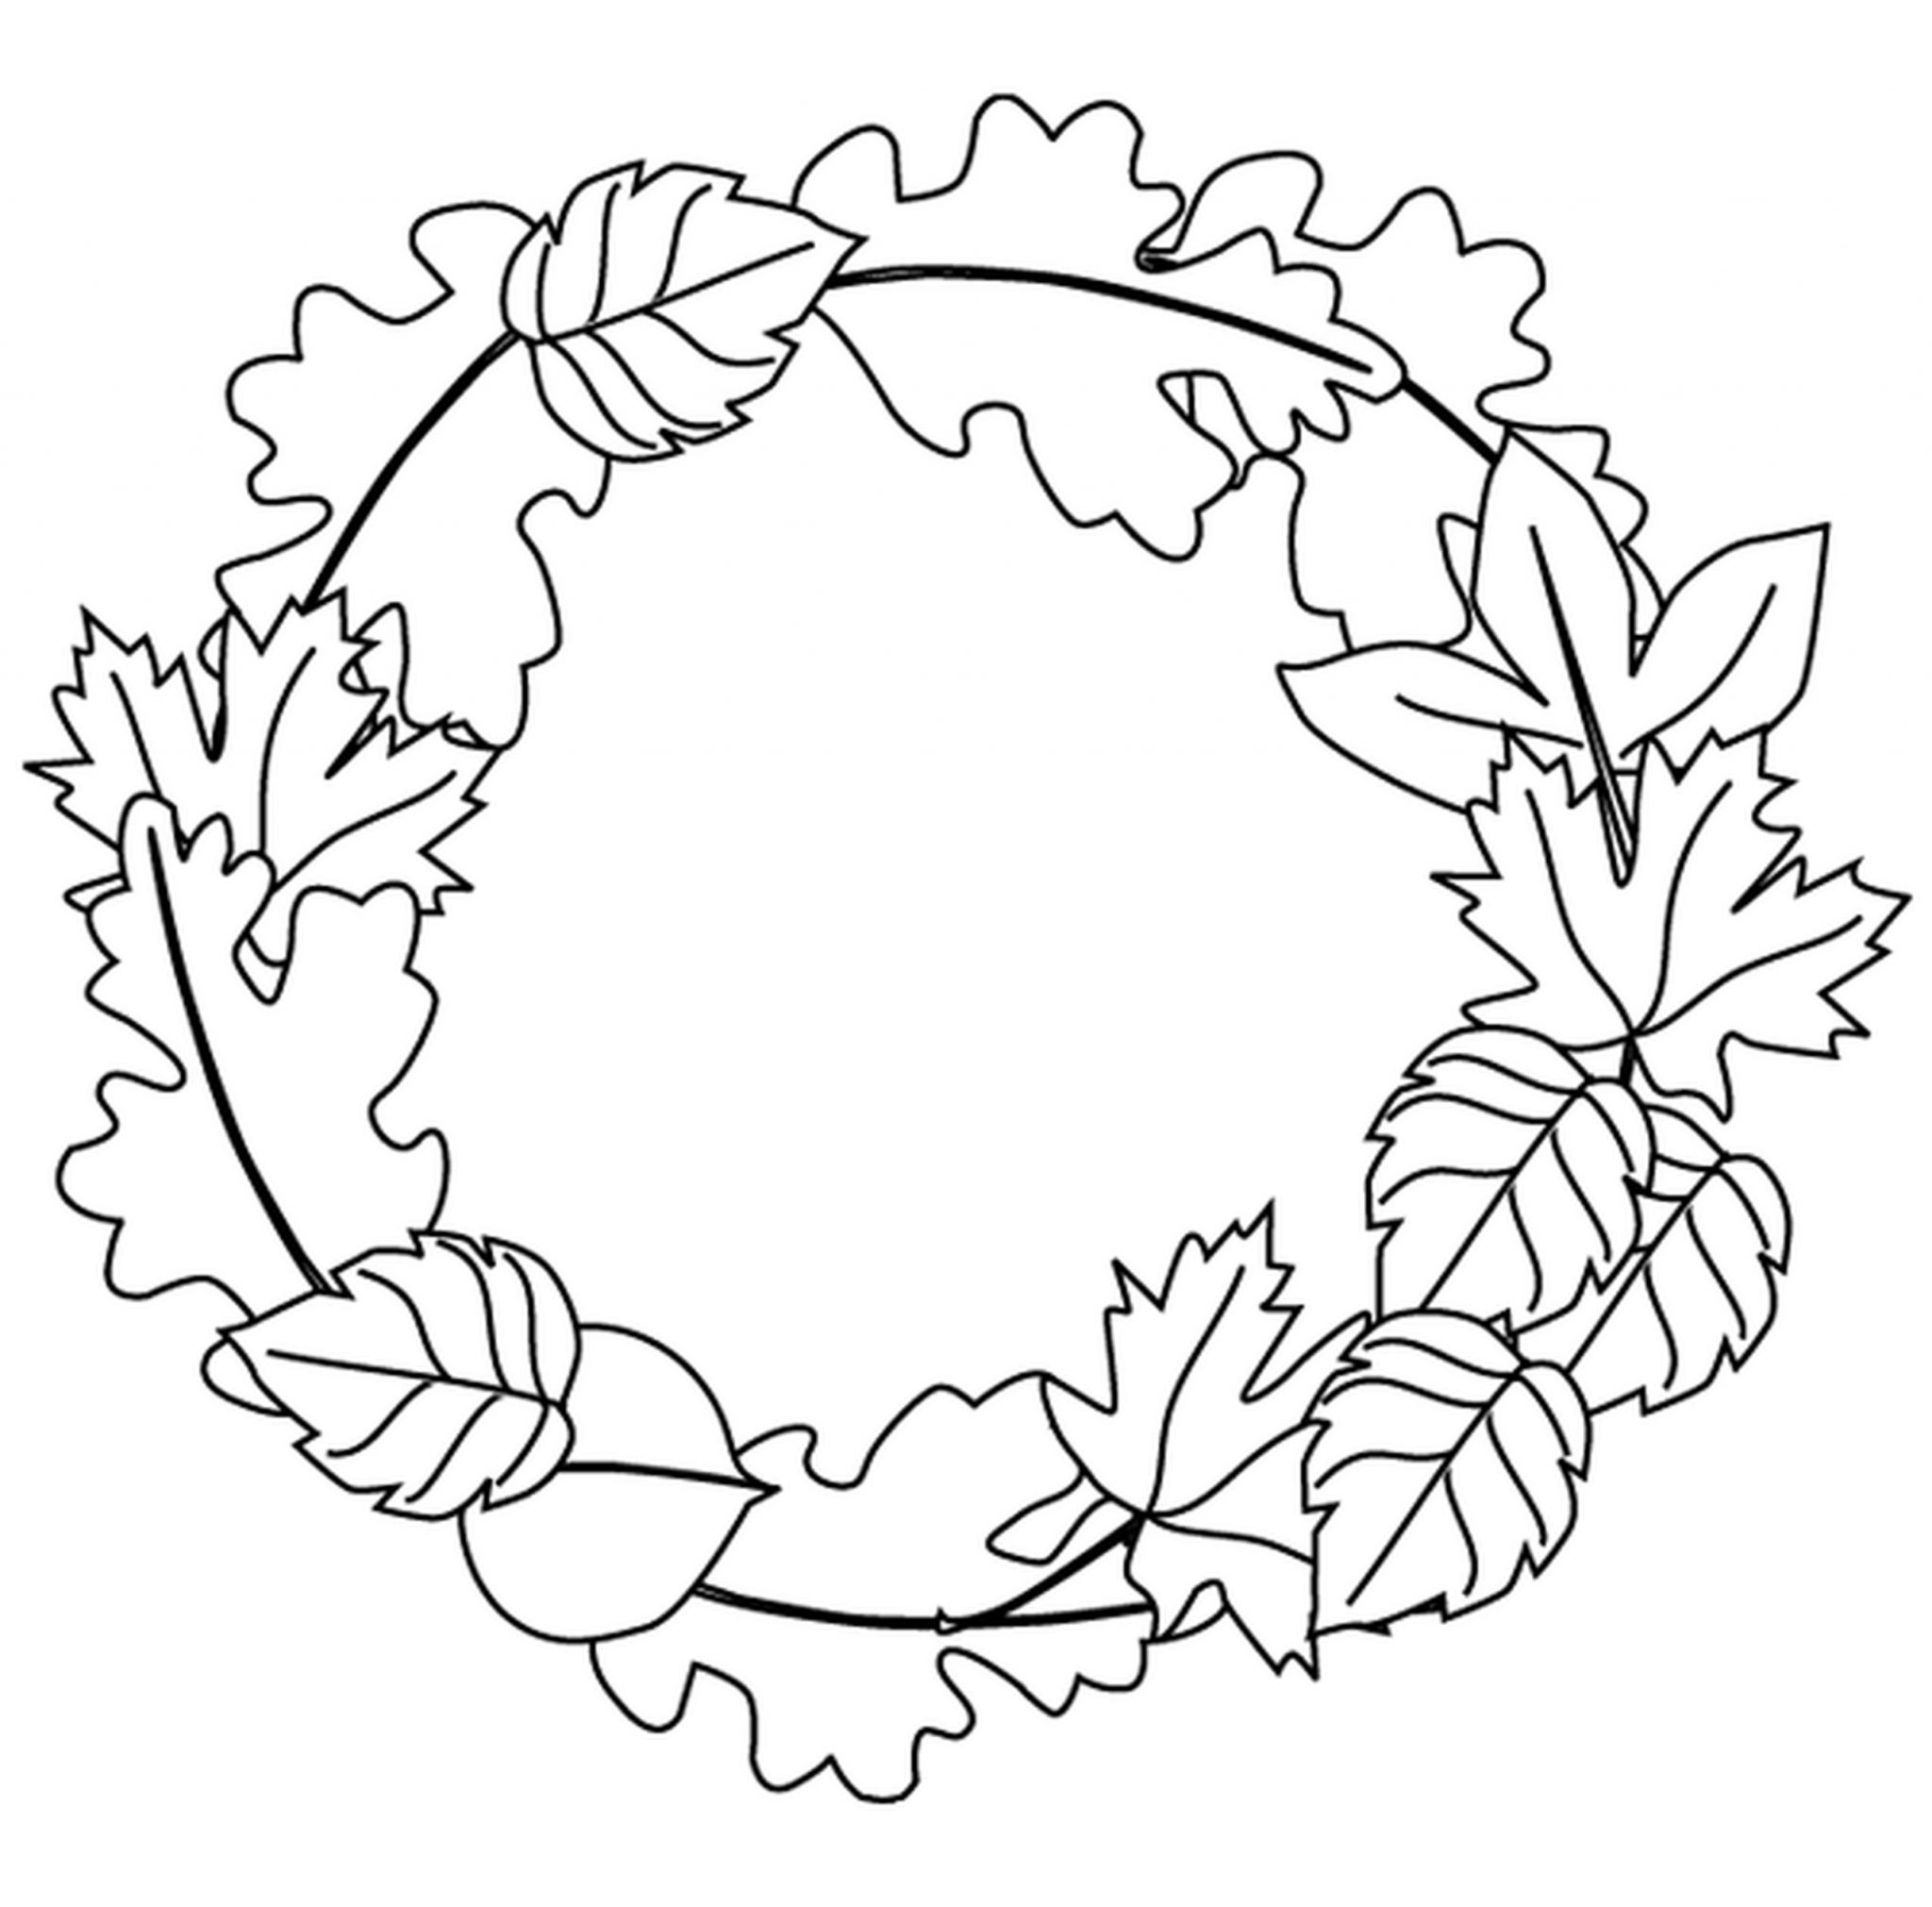 autumn leaves pictures to colour leaf coloring pages for fun coloring activity in 2020 to colour autumn pictures leaves